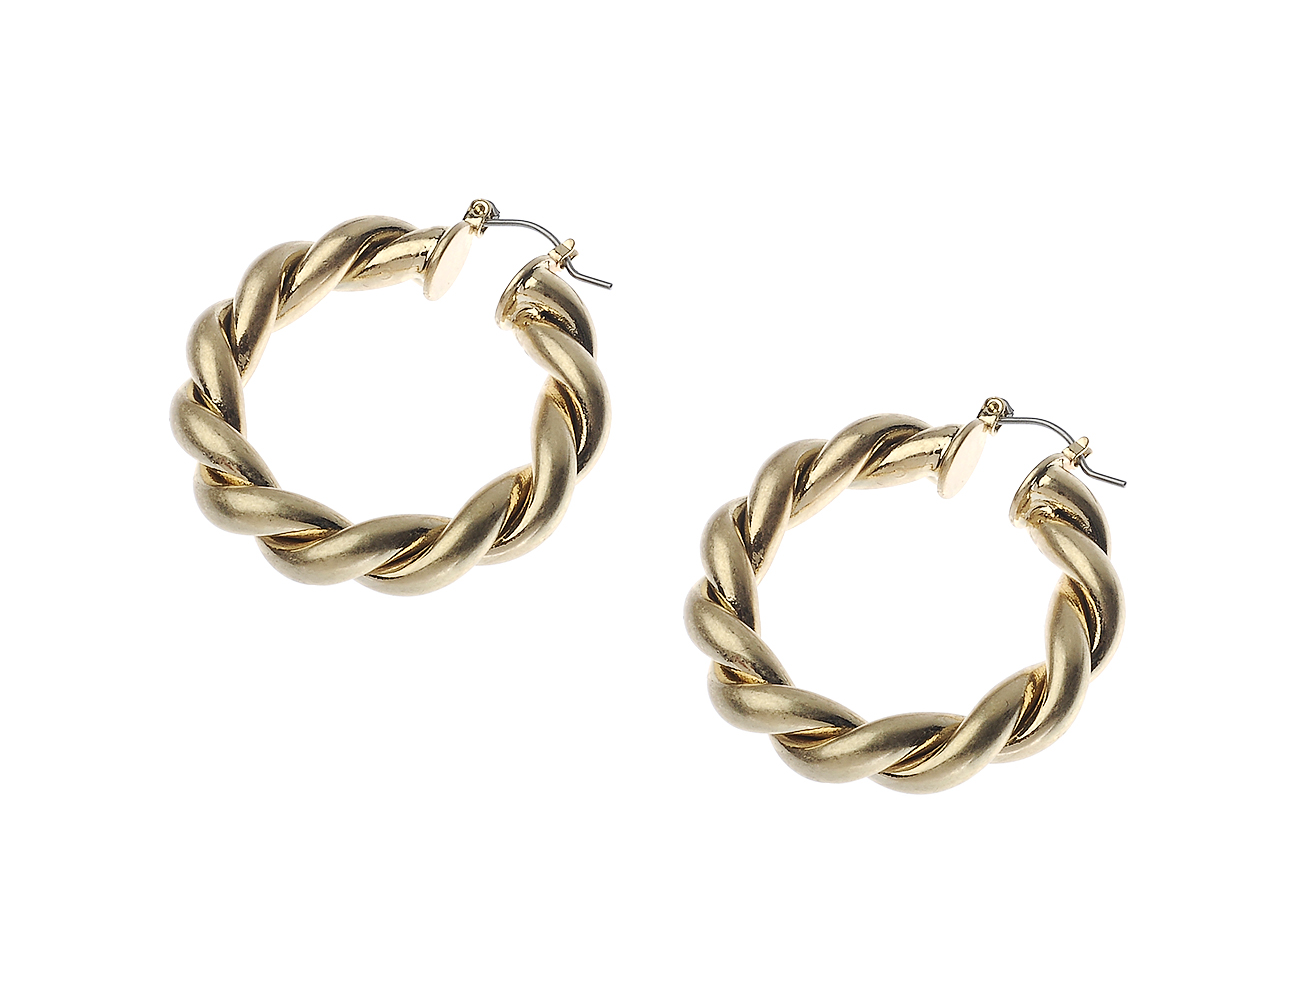 Worn Gold Twist Hoop Earring